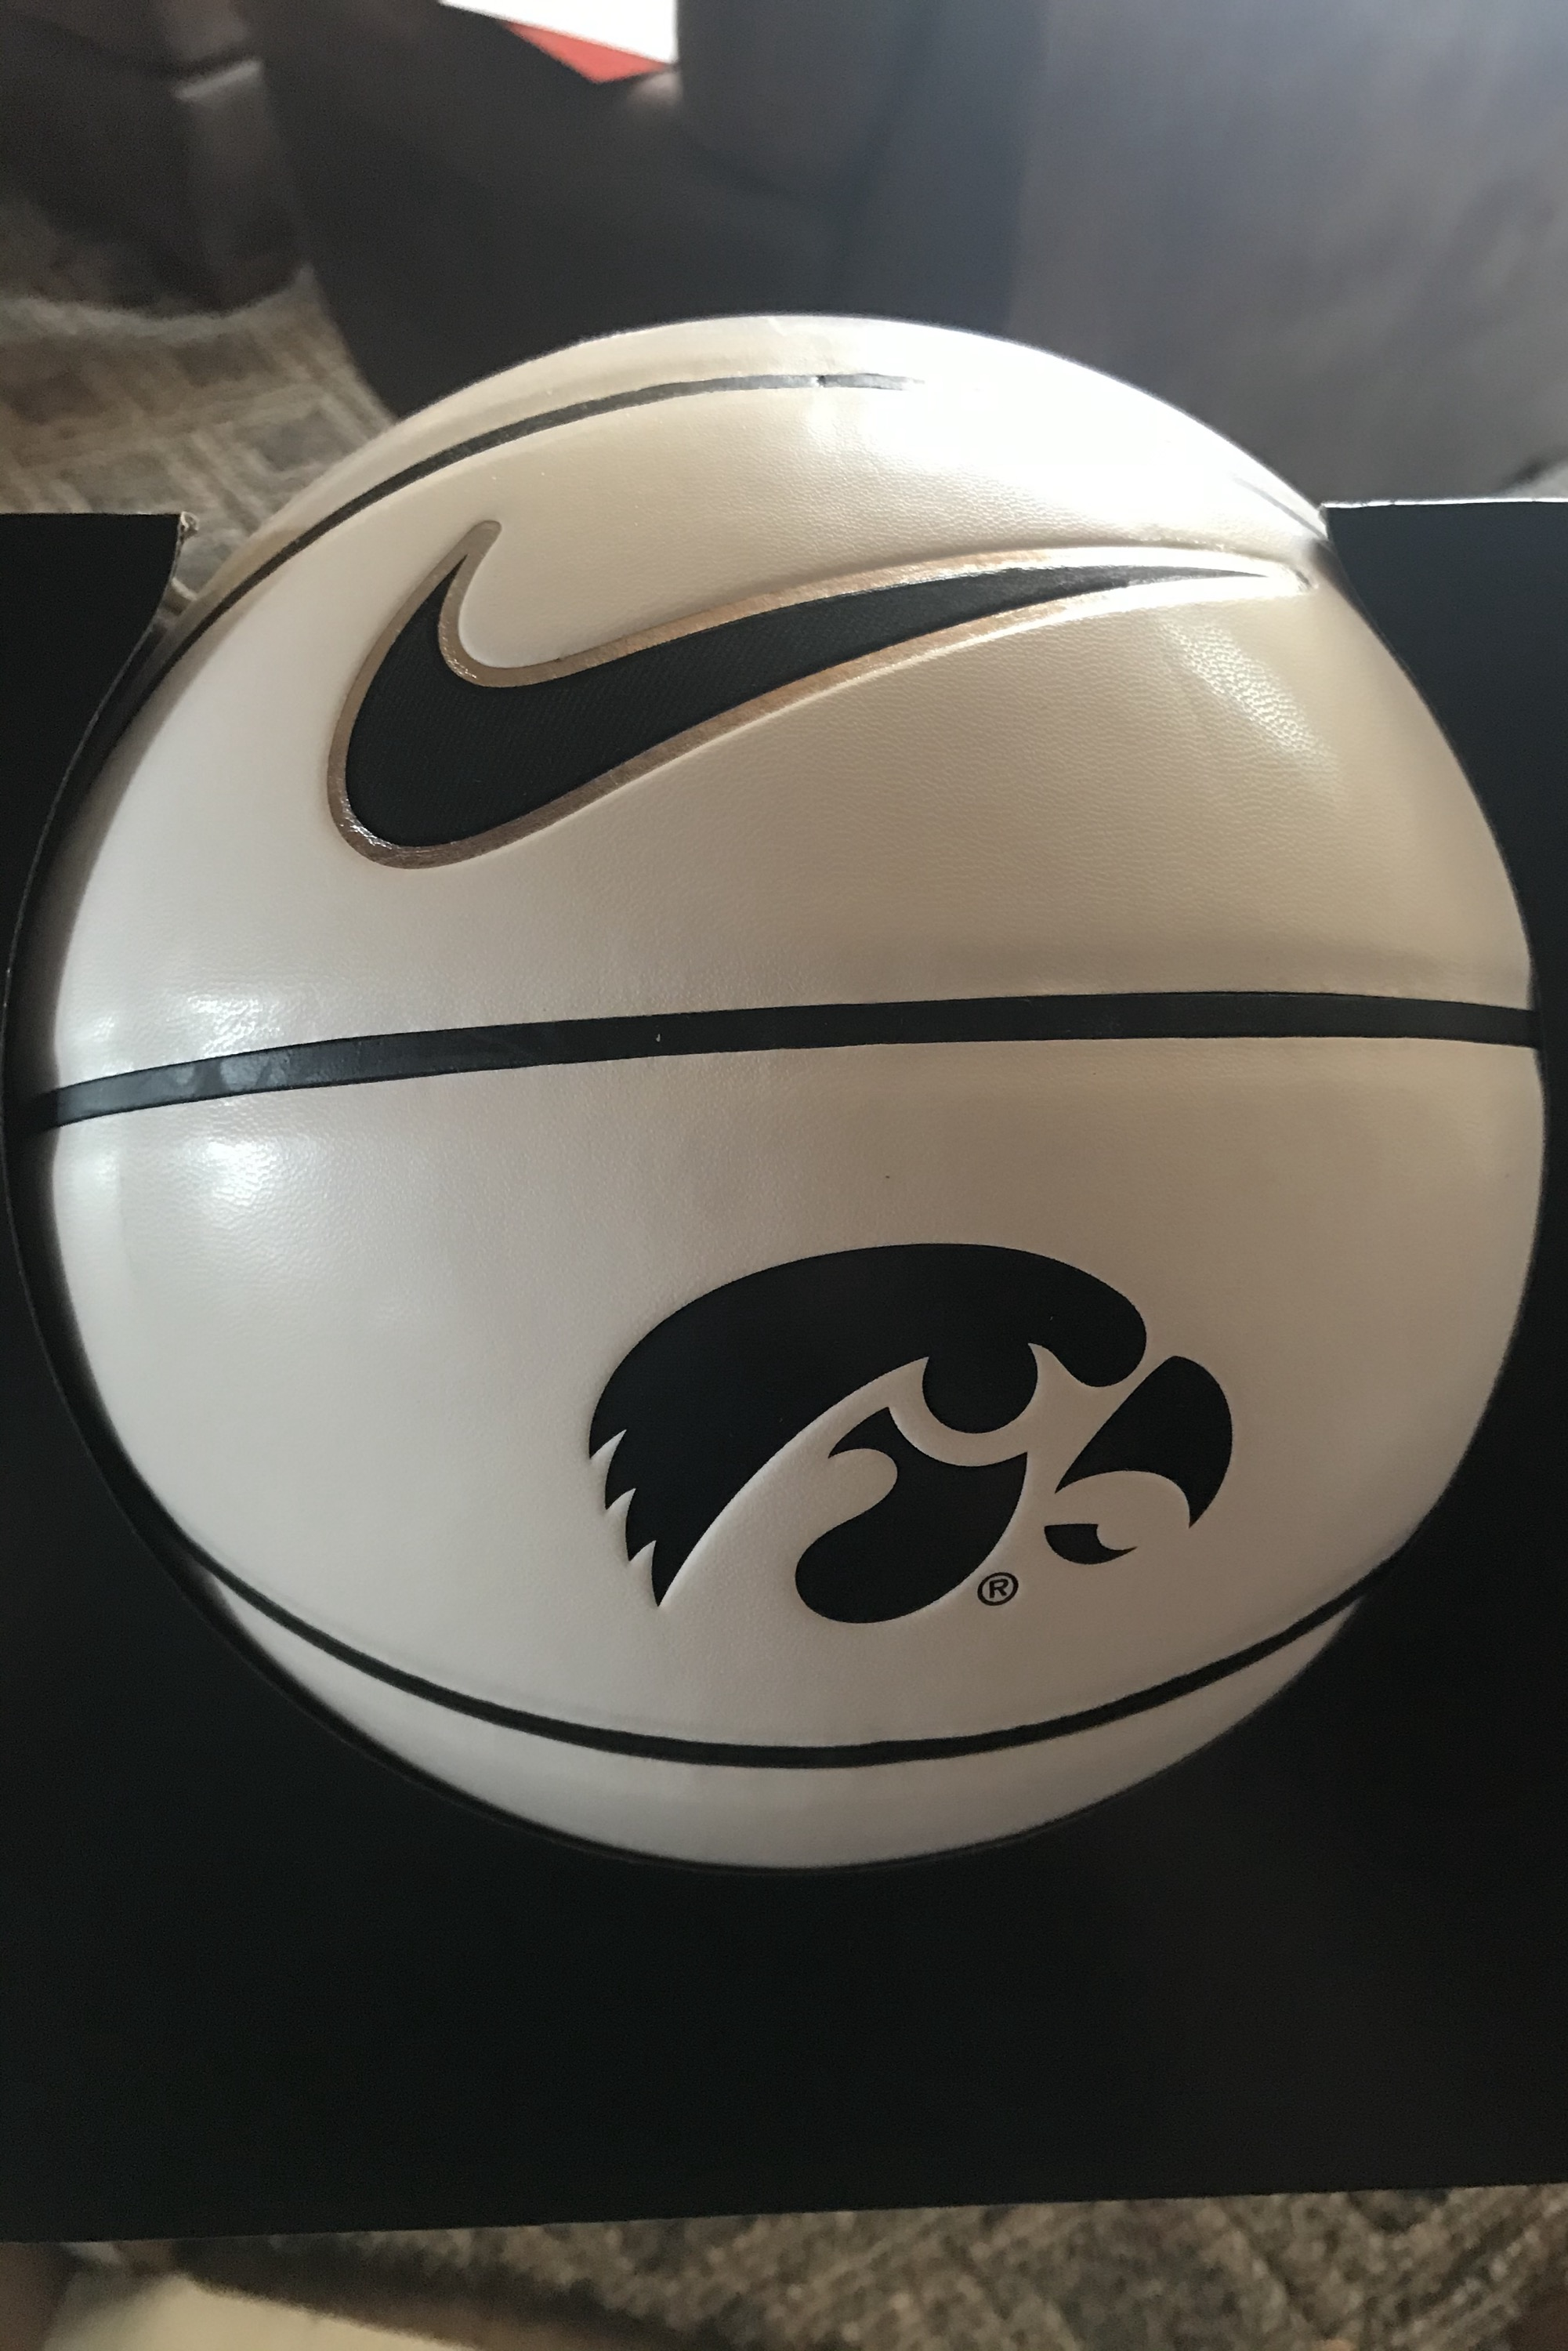 Iowa Men's Basketball, winner will get a personalized autograph from Iowa head coach Fran McCaffery!